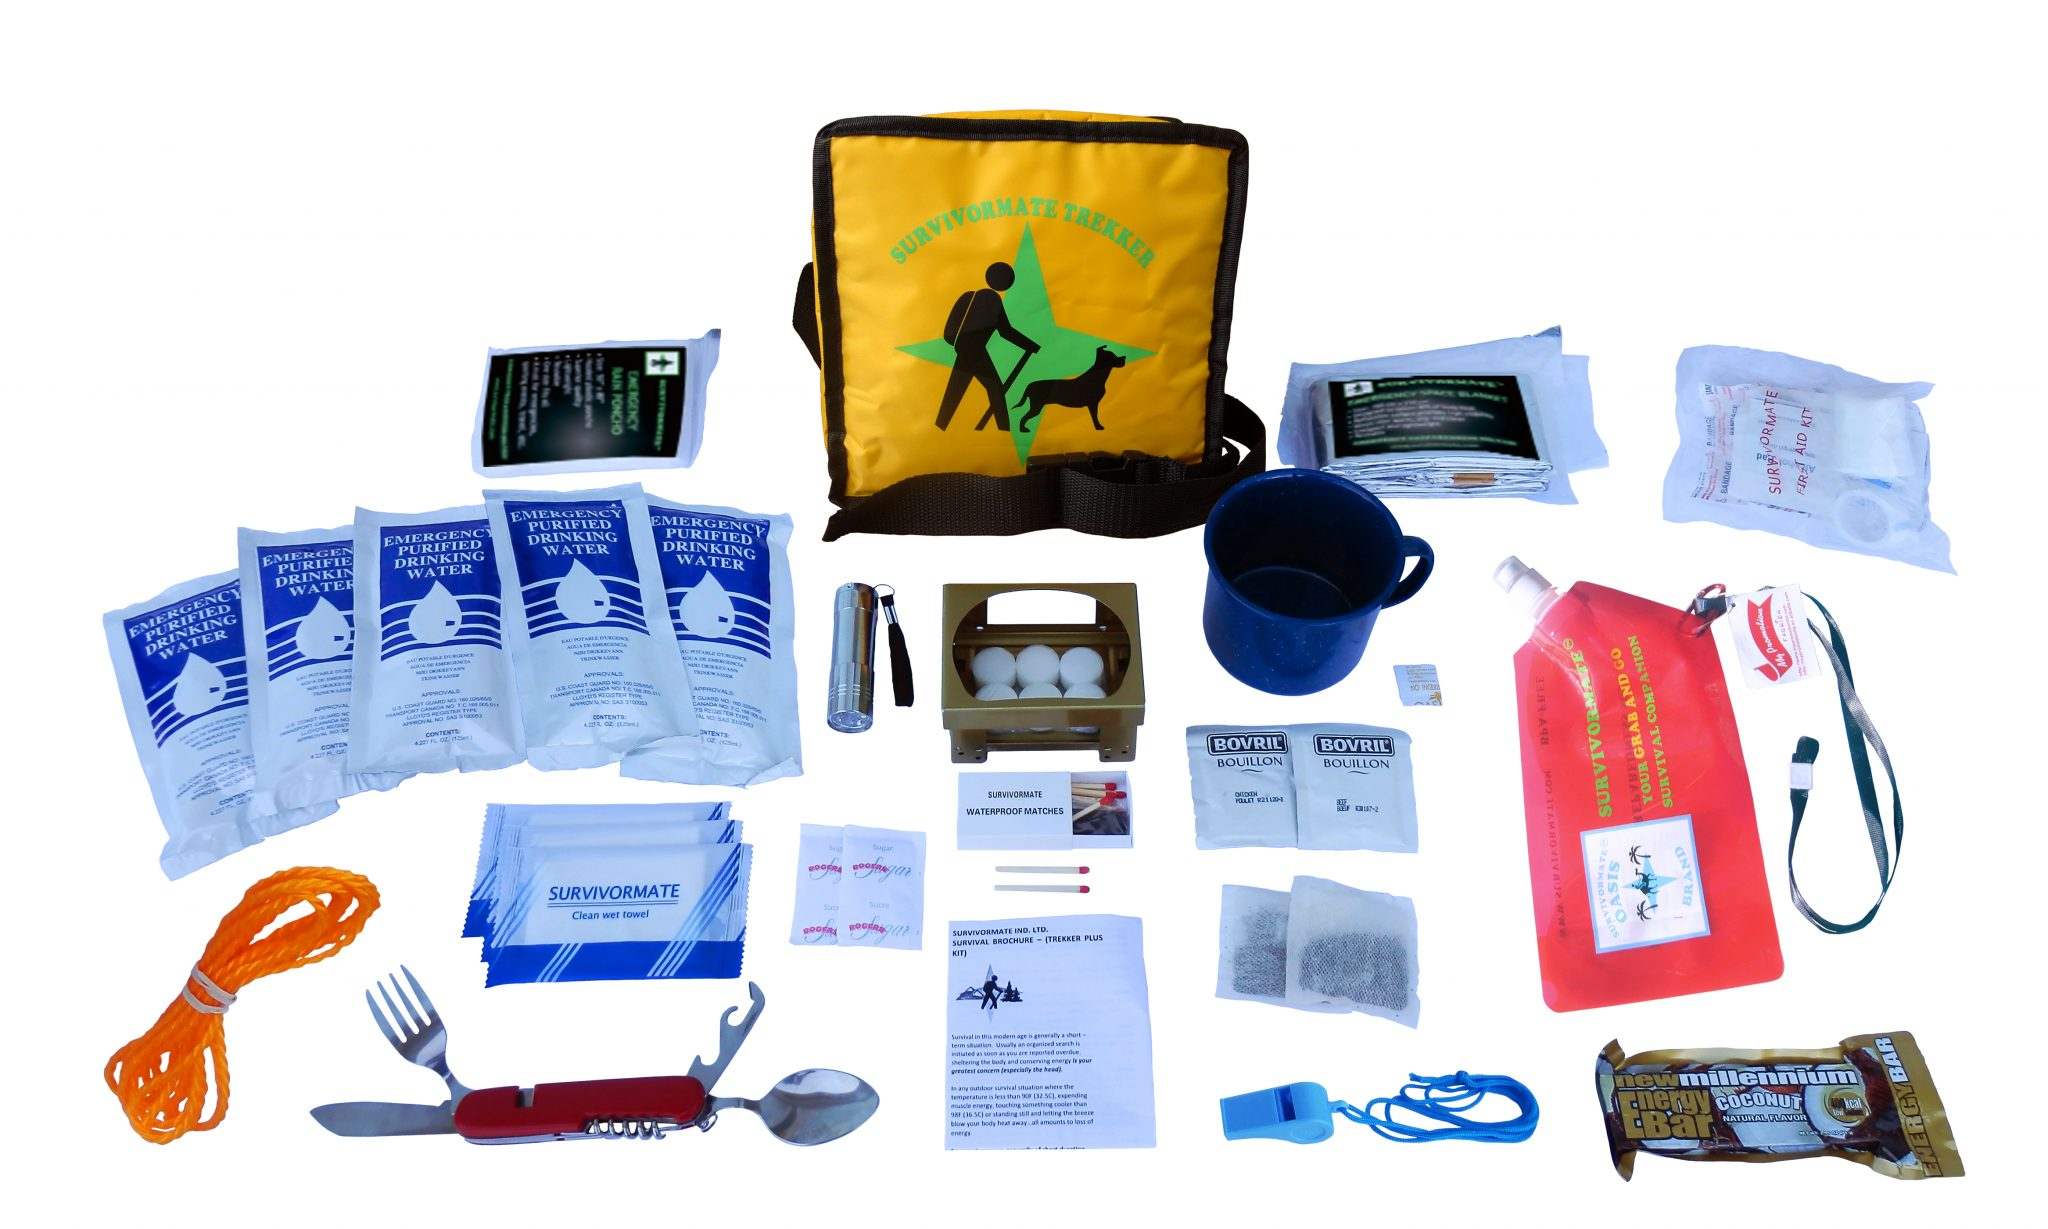 Survivormate Trekker Kit